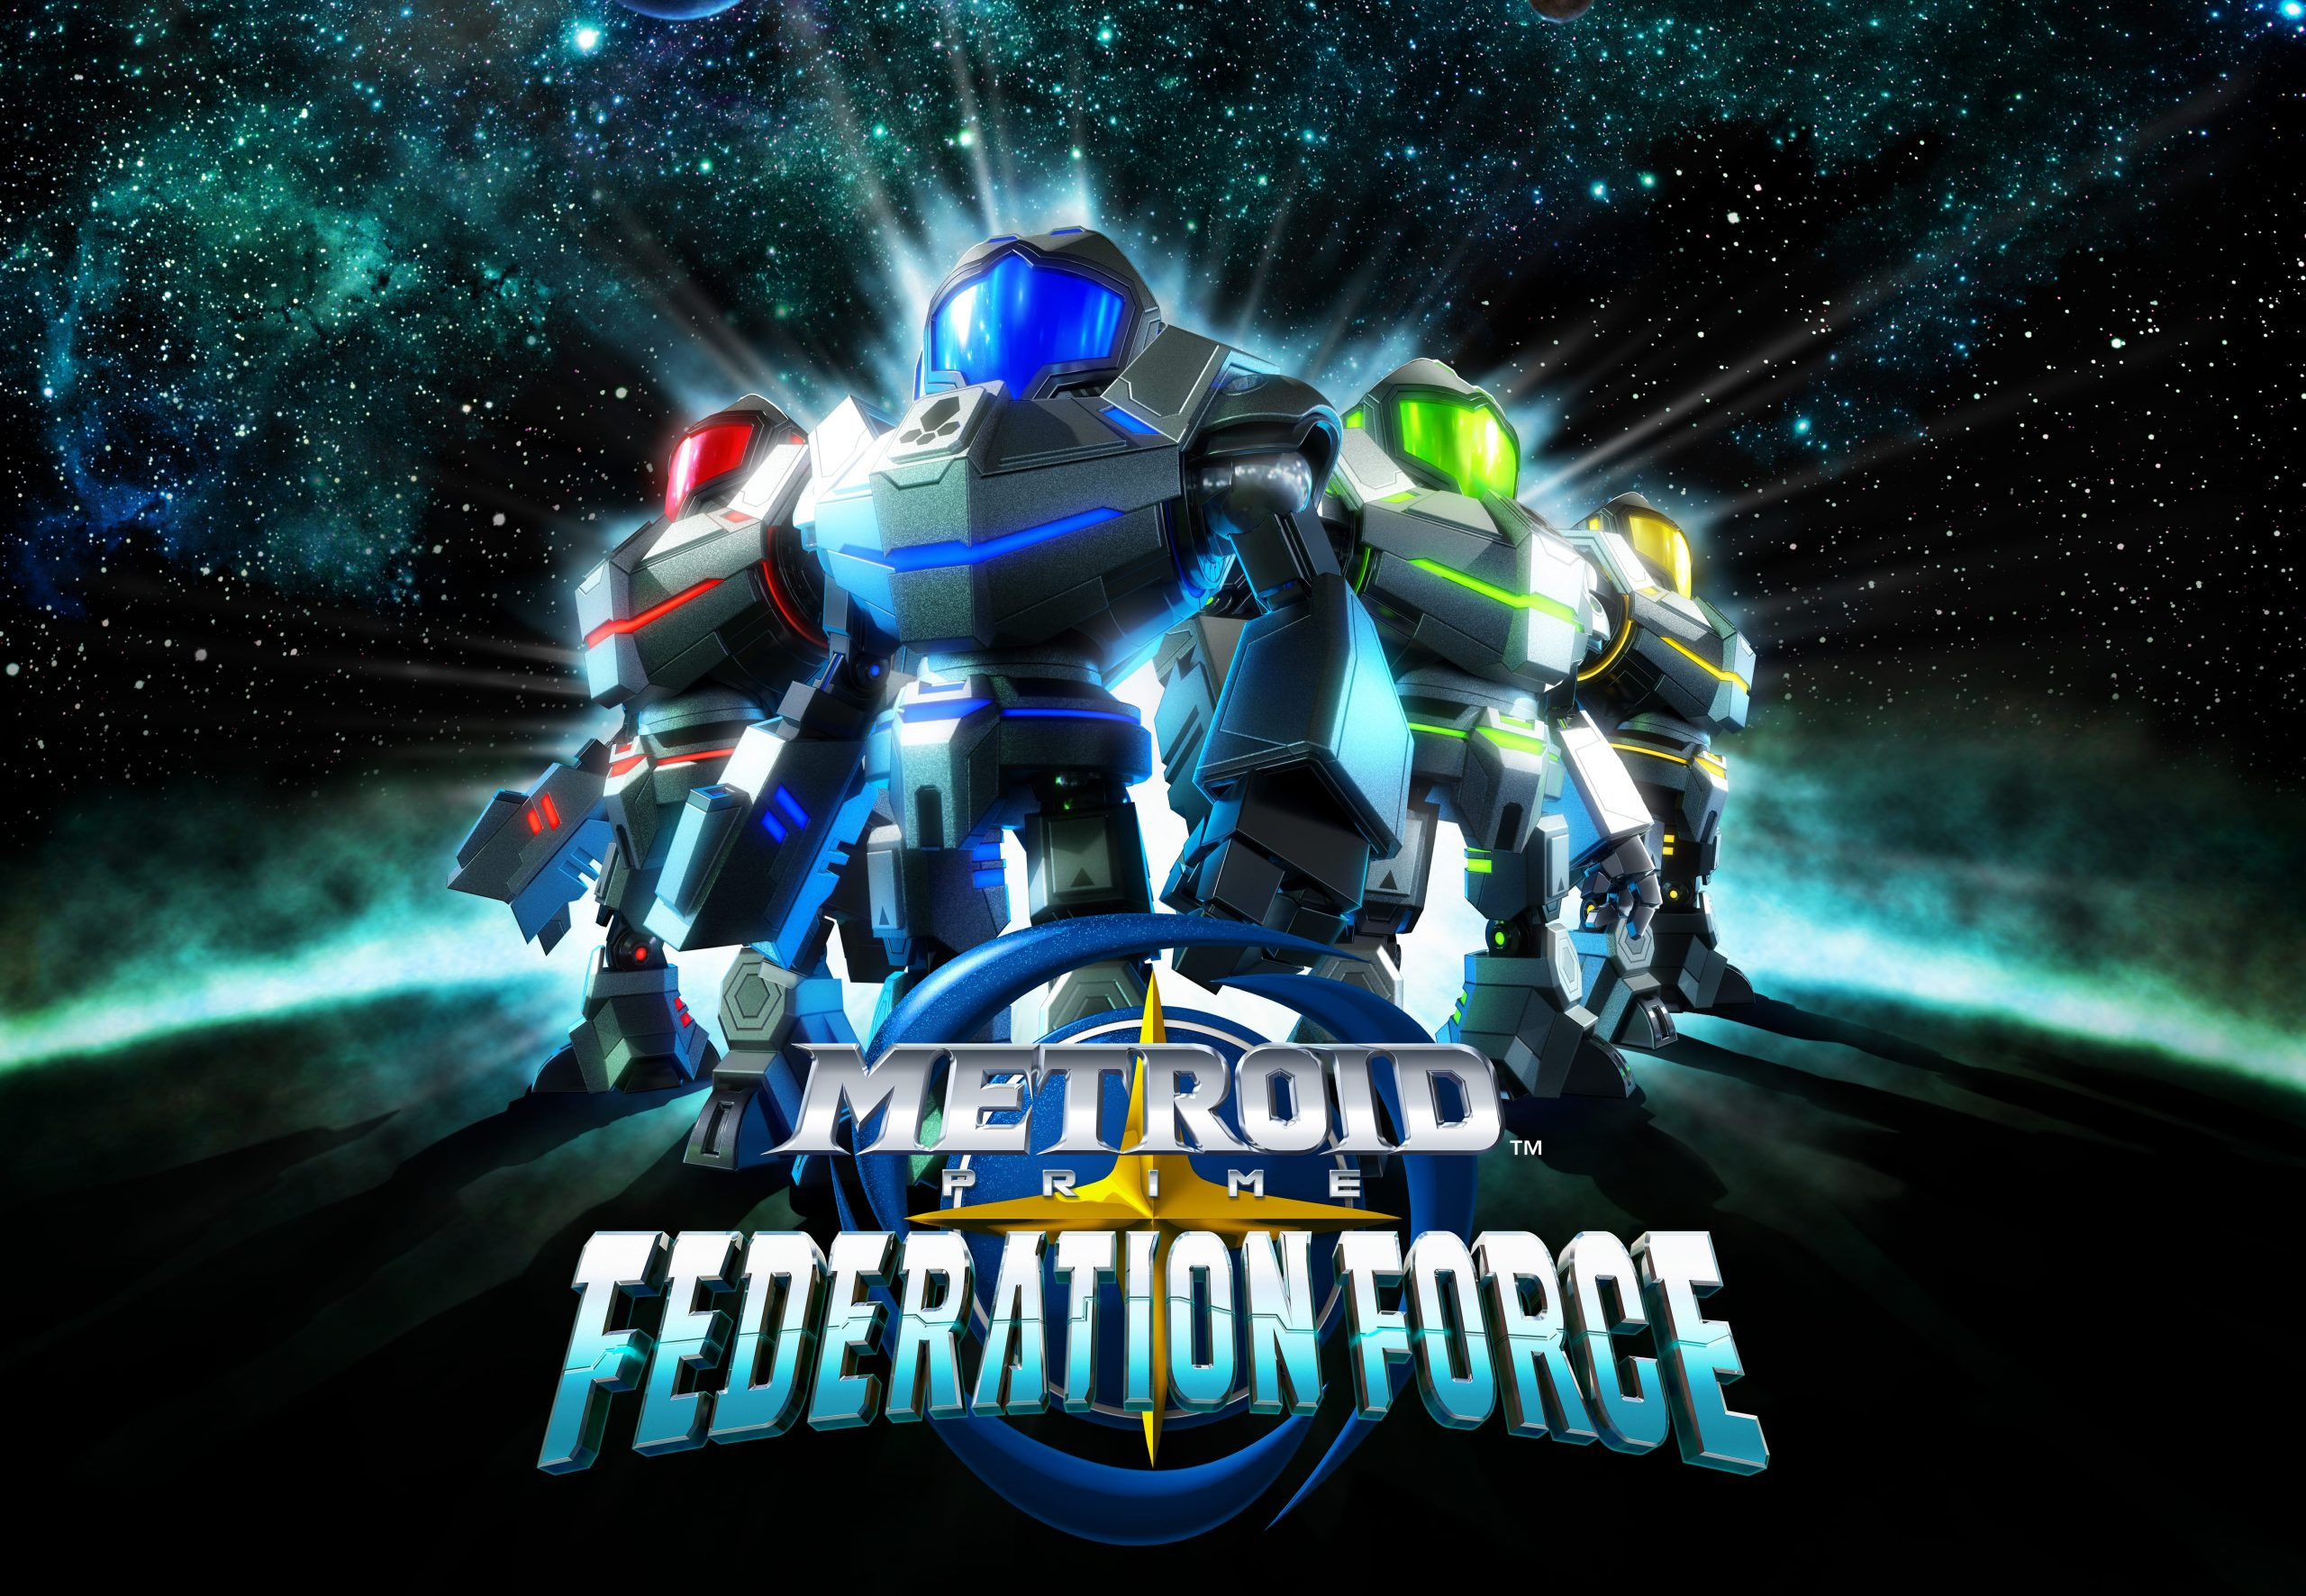 Metroid Prime: Federation Force AMAA Answers